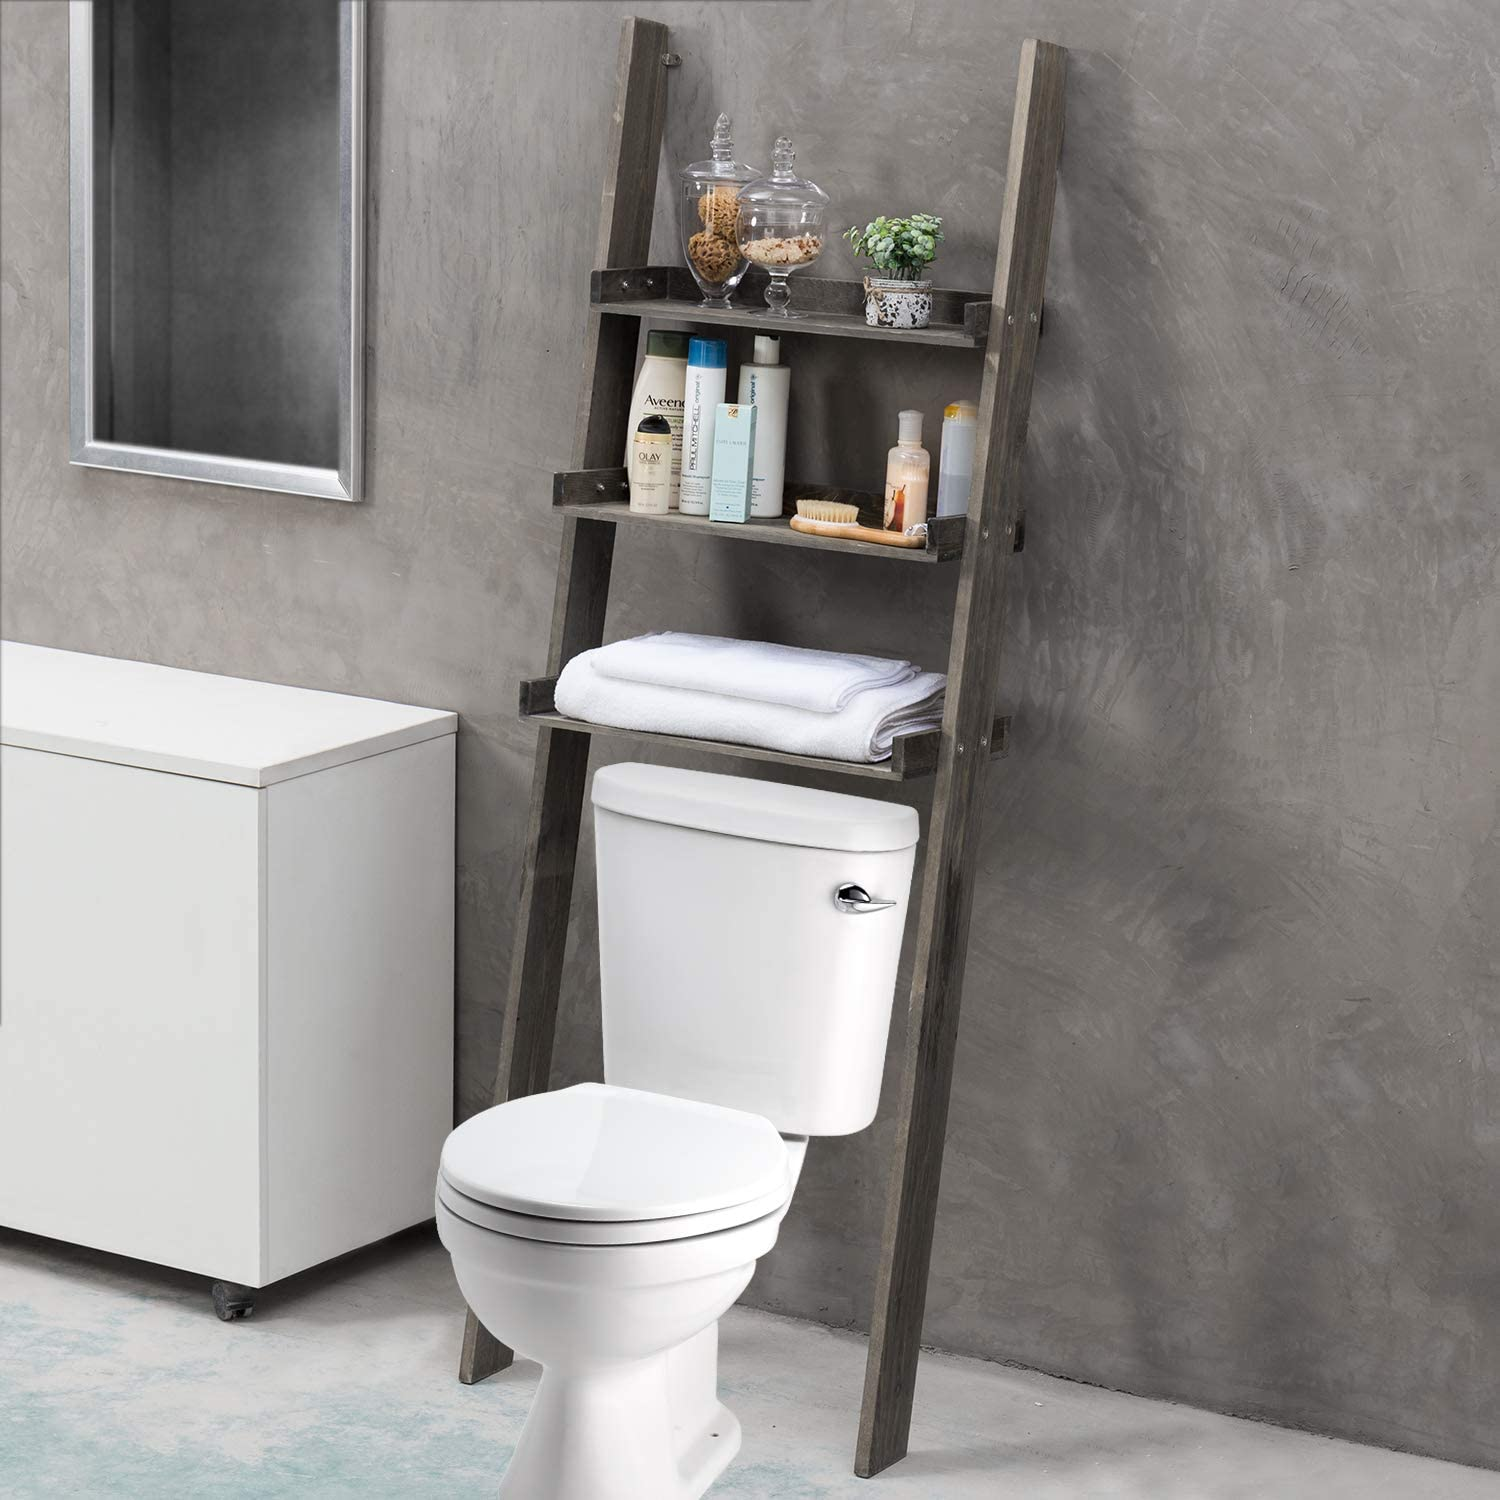 Amazon Com Mygift 3 Tier Gray Wood Over The Toilet Leaning Bathroom Ladder Shelf Home Kitchen